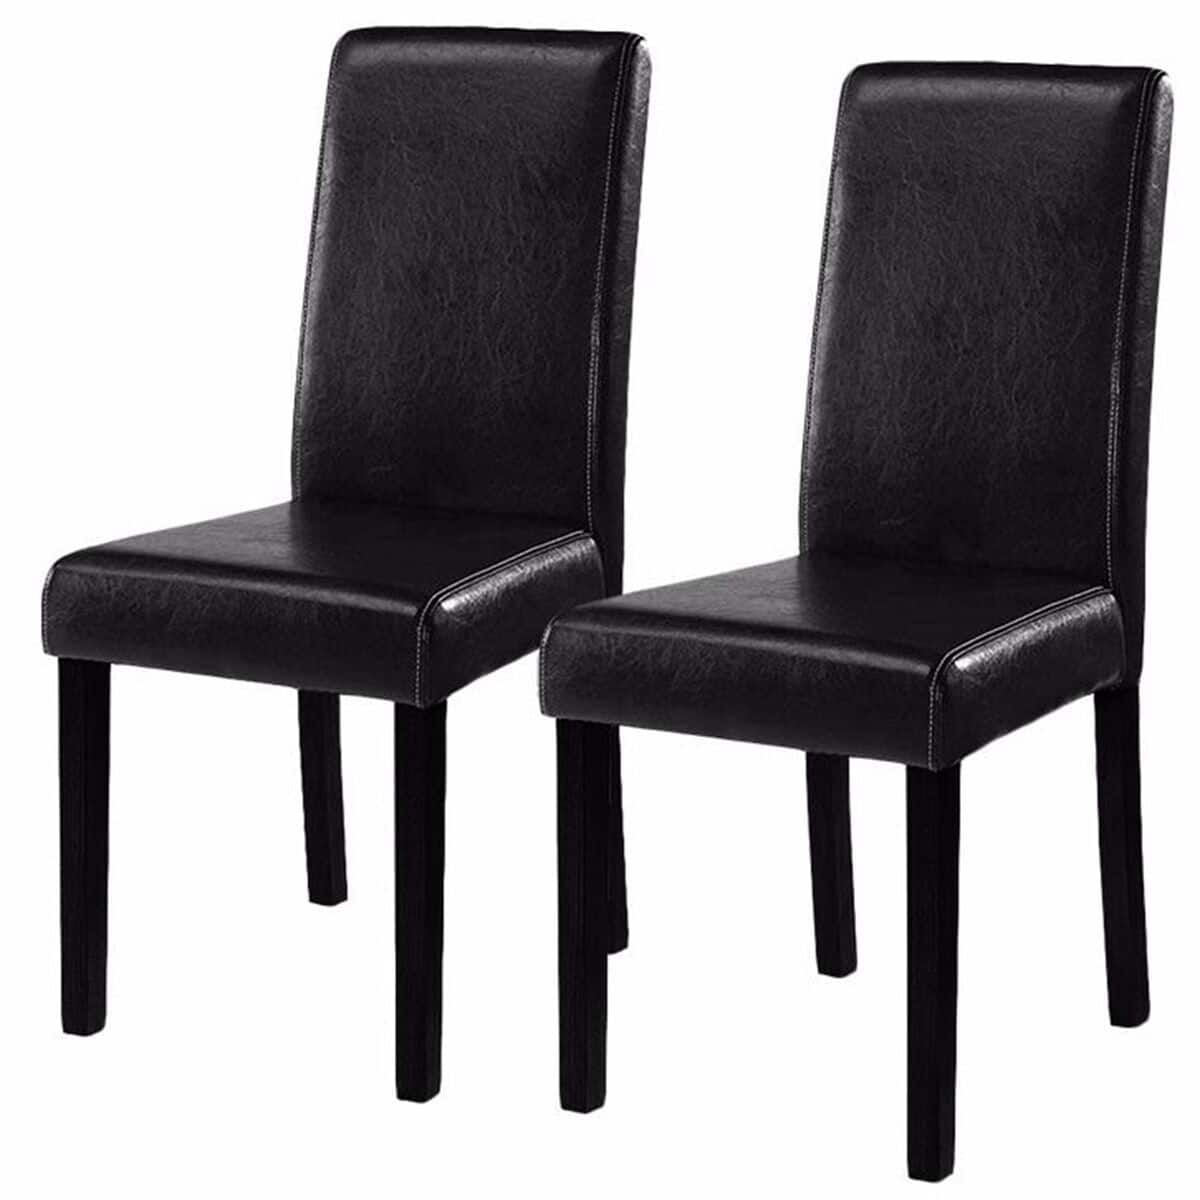 Set of 2 Contemporary Dining Chairs - $67.00 + Free Shipping